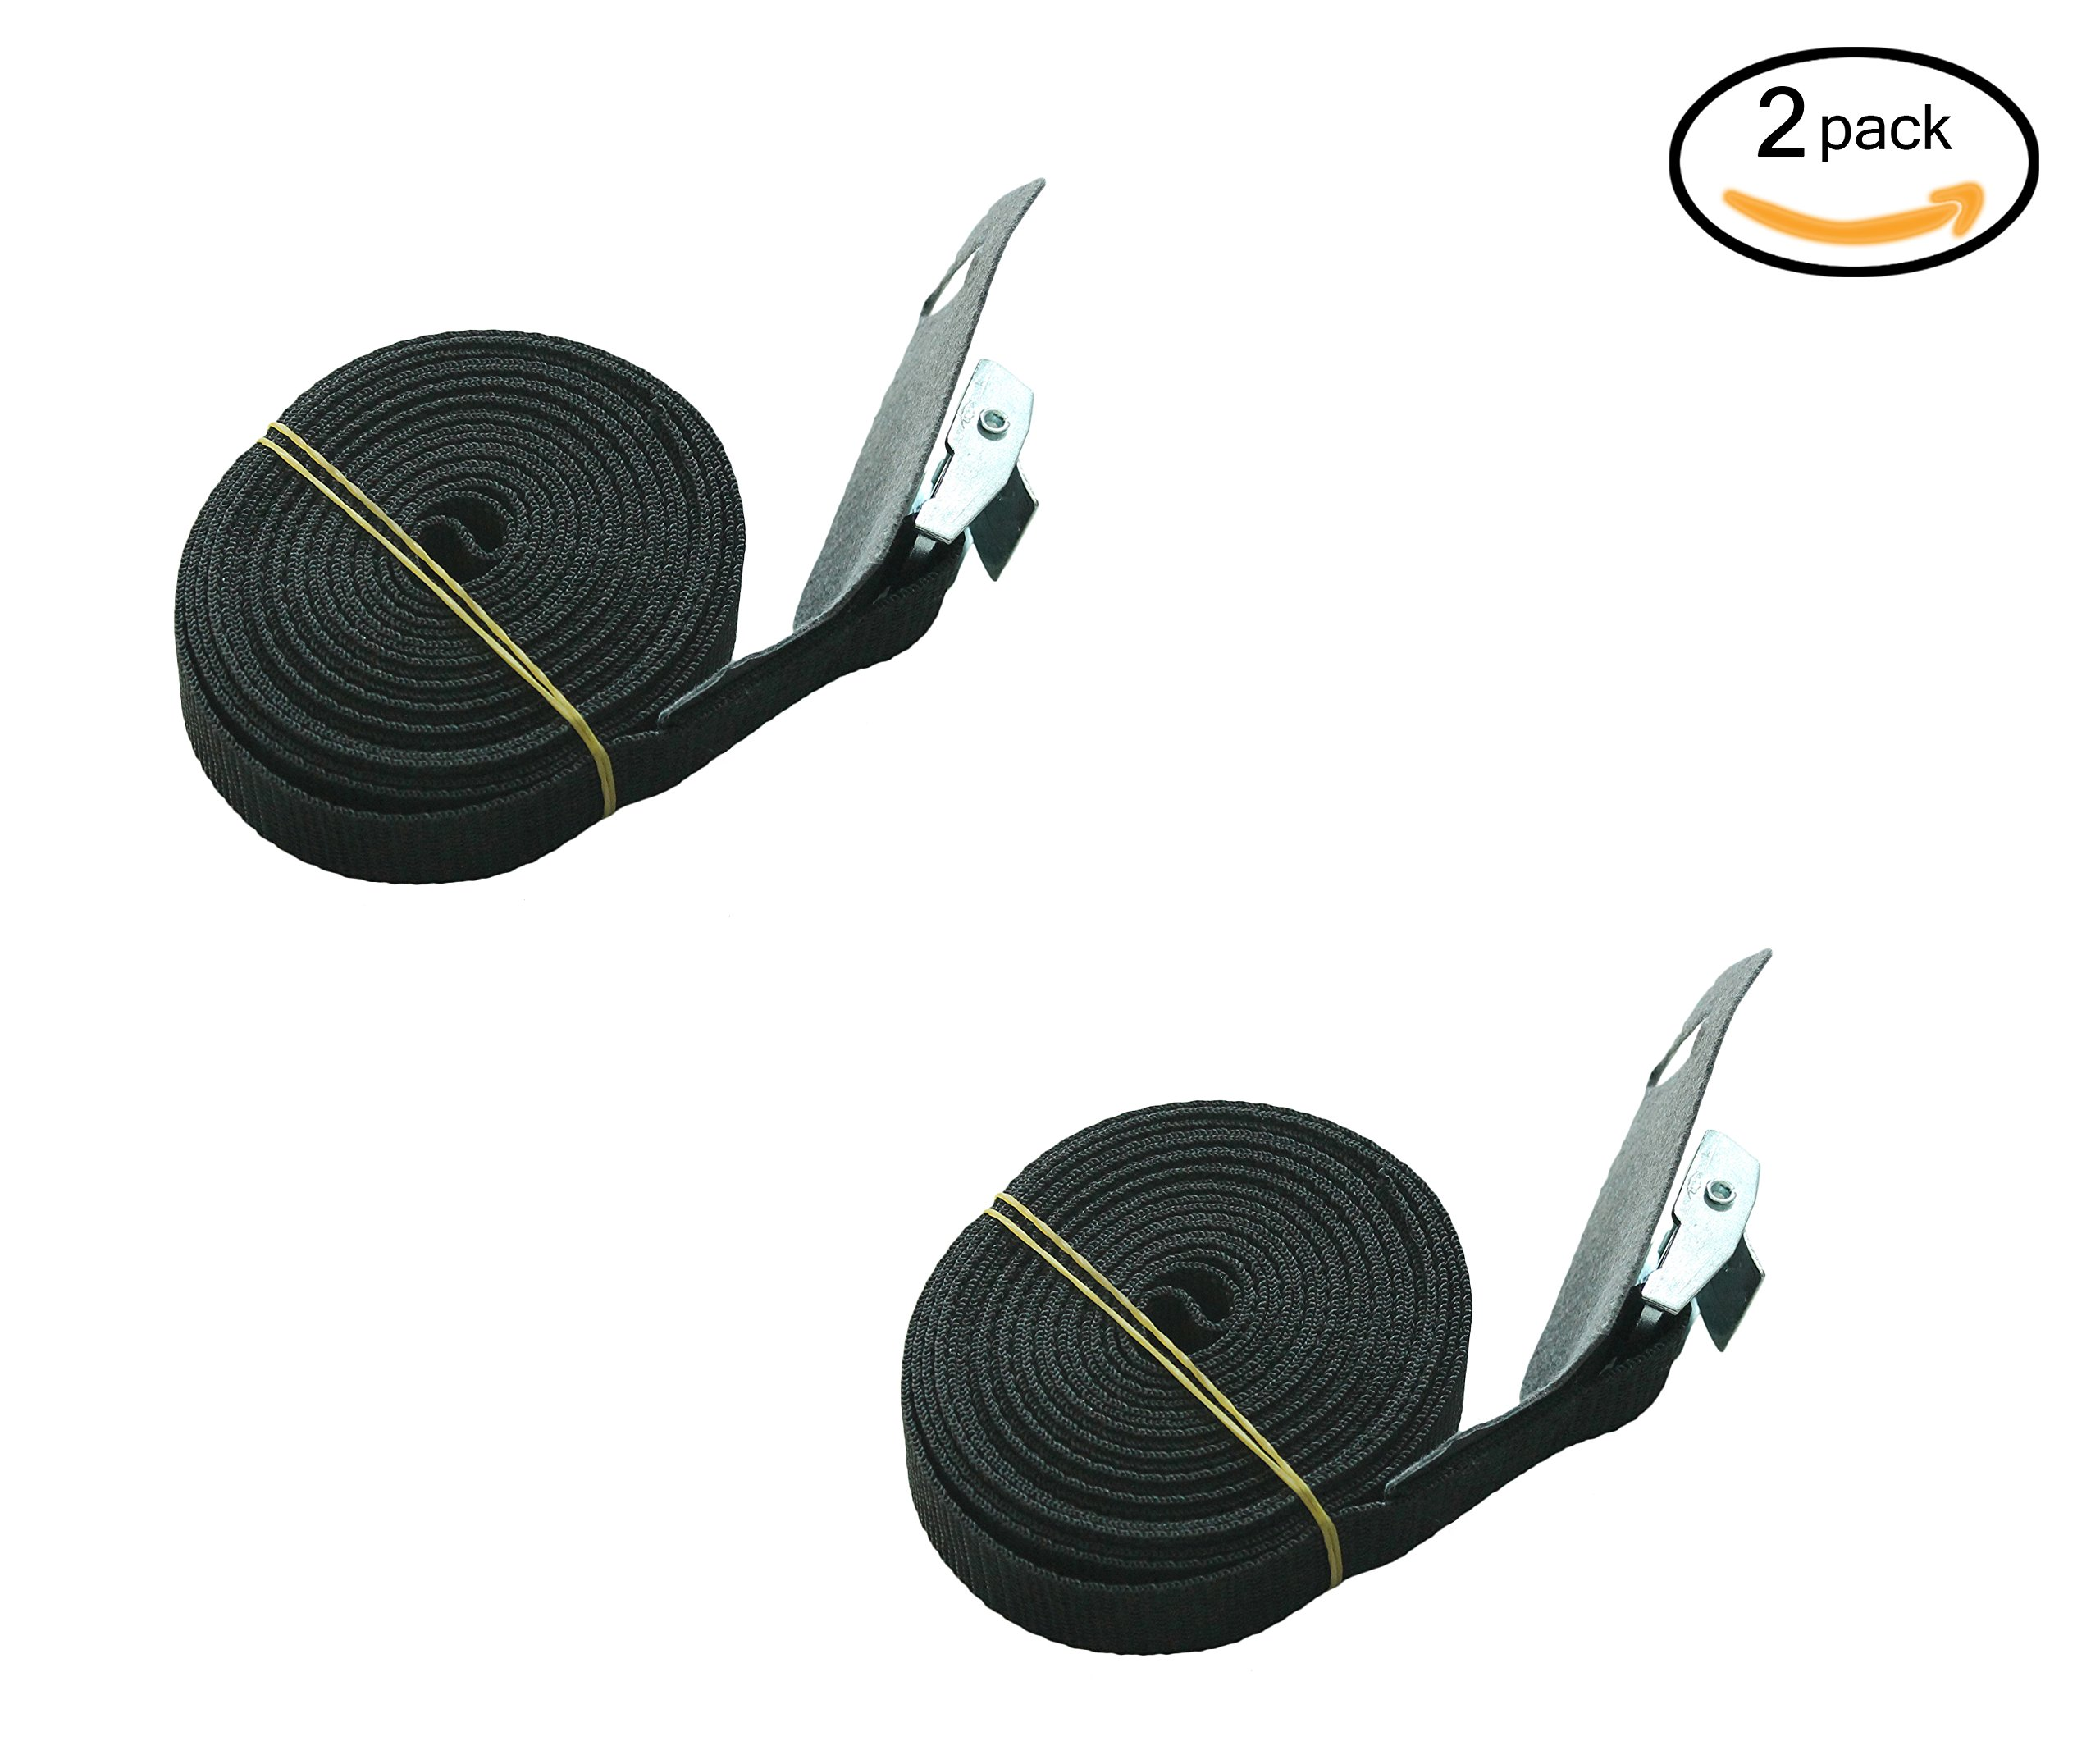 Surfboard/Kayak/SUP Tie-down Lashing Strap up to 600lbs, 1 inch X 12 foot with ZINC PLATED STEEL CLAMP Buckle